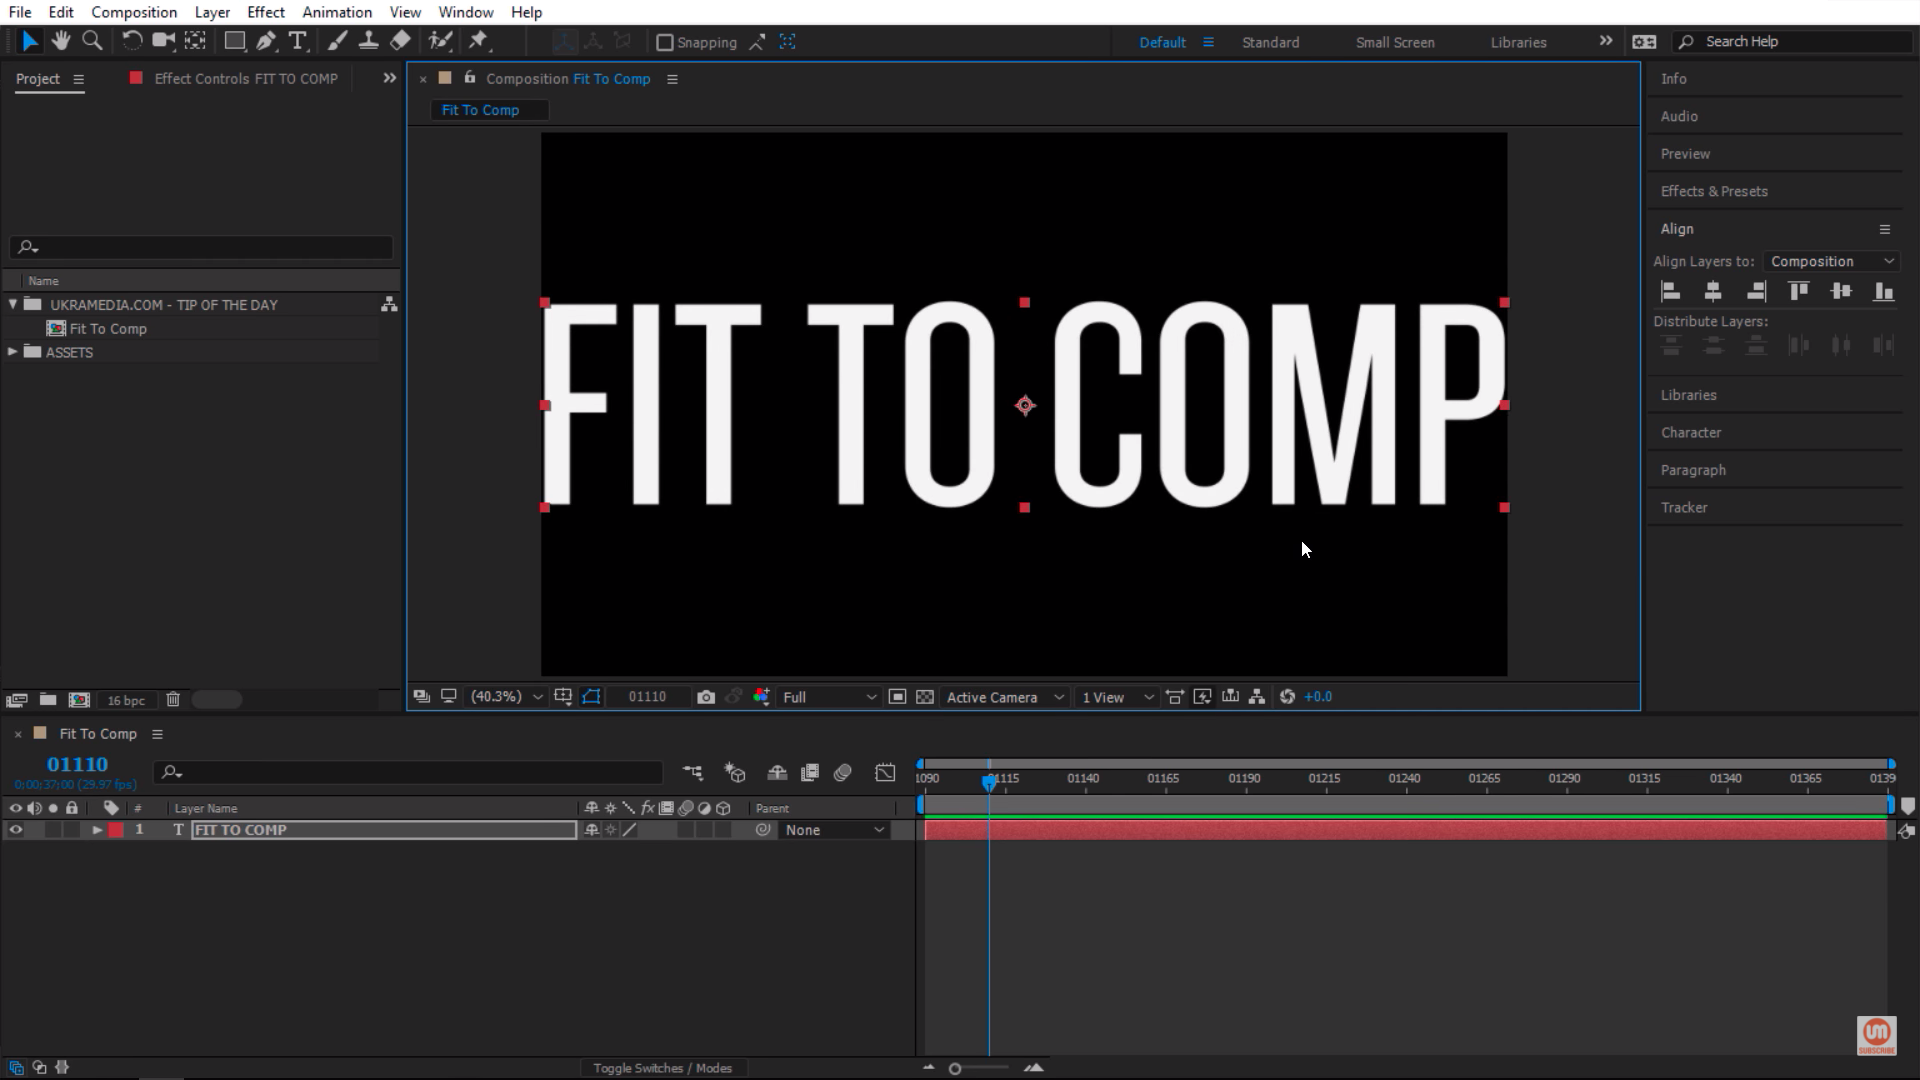 Scale to fit to comp in Adobe After Effects